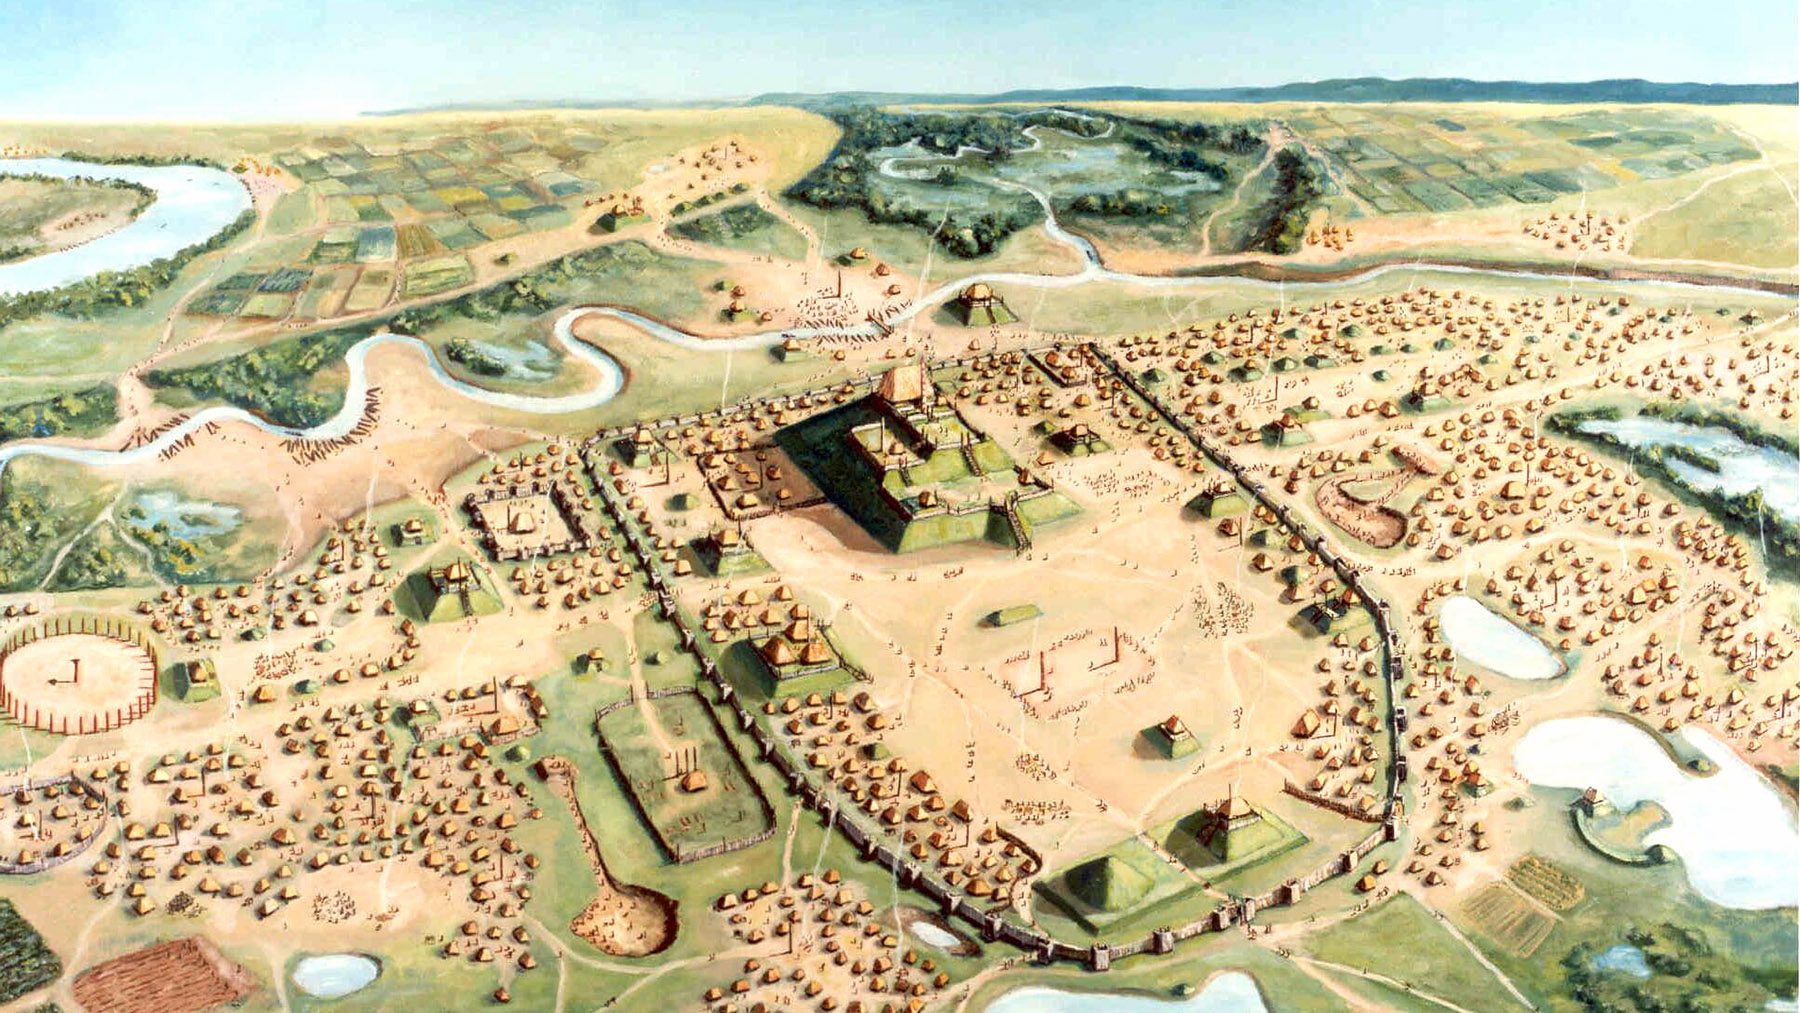 Painting of Cahokia by William R.  Iseminger, courtesy of Cahokia Mounds State Historic Site